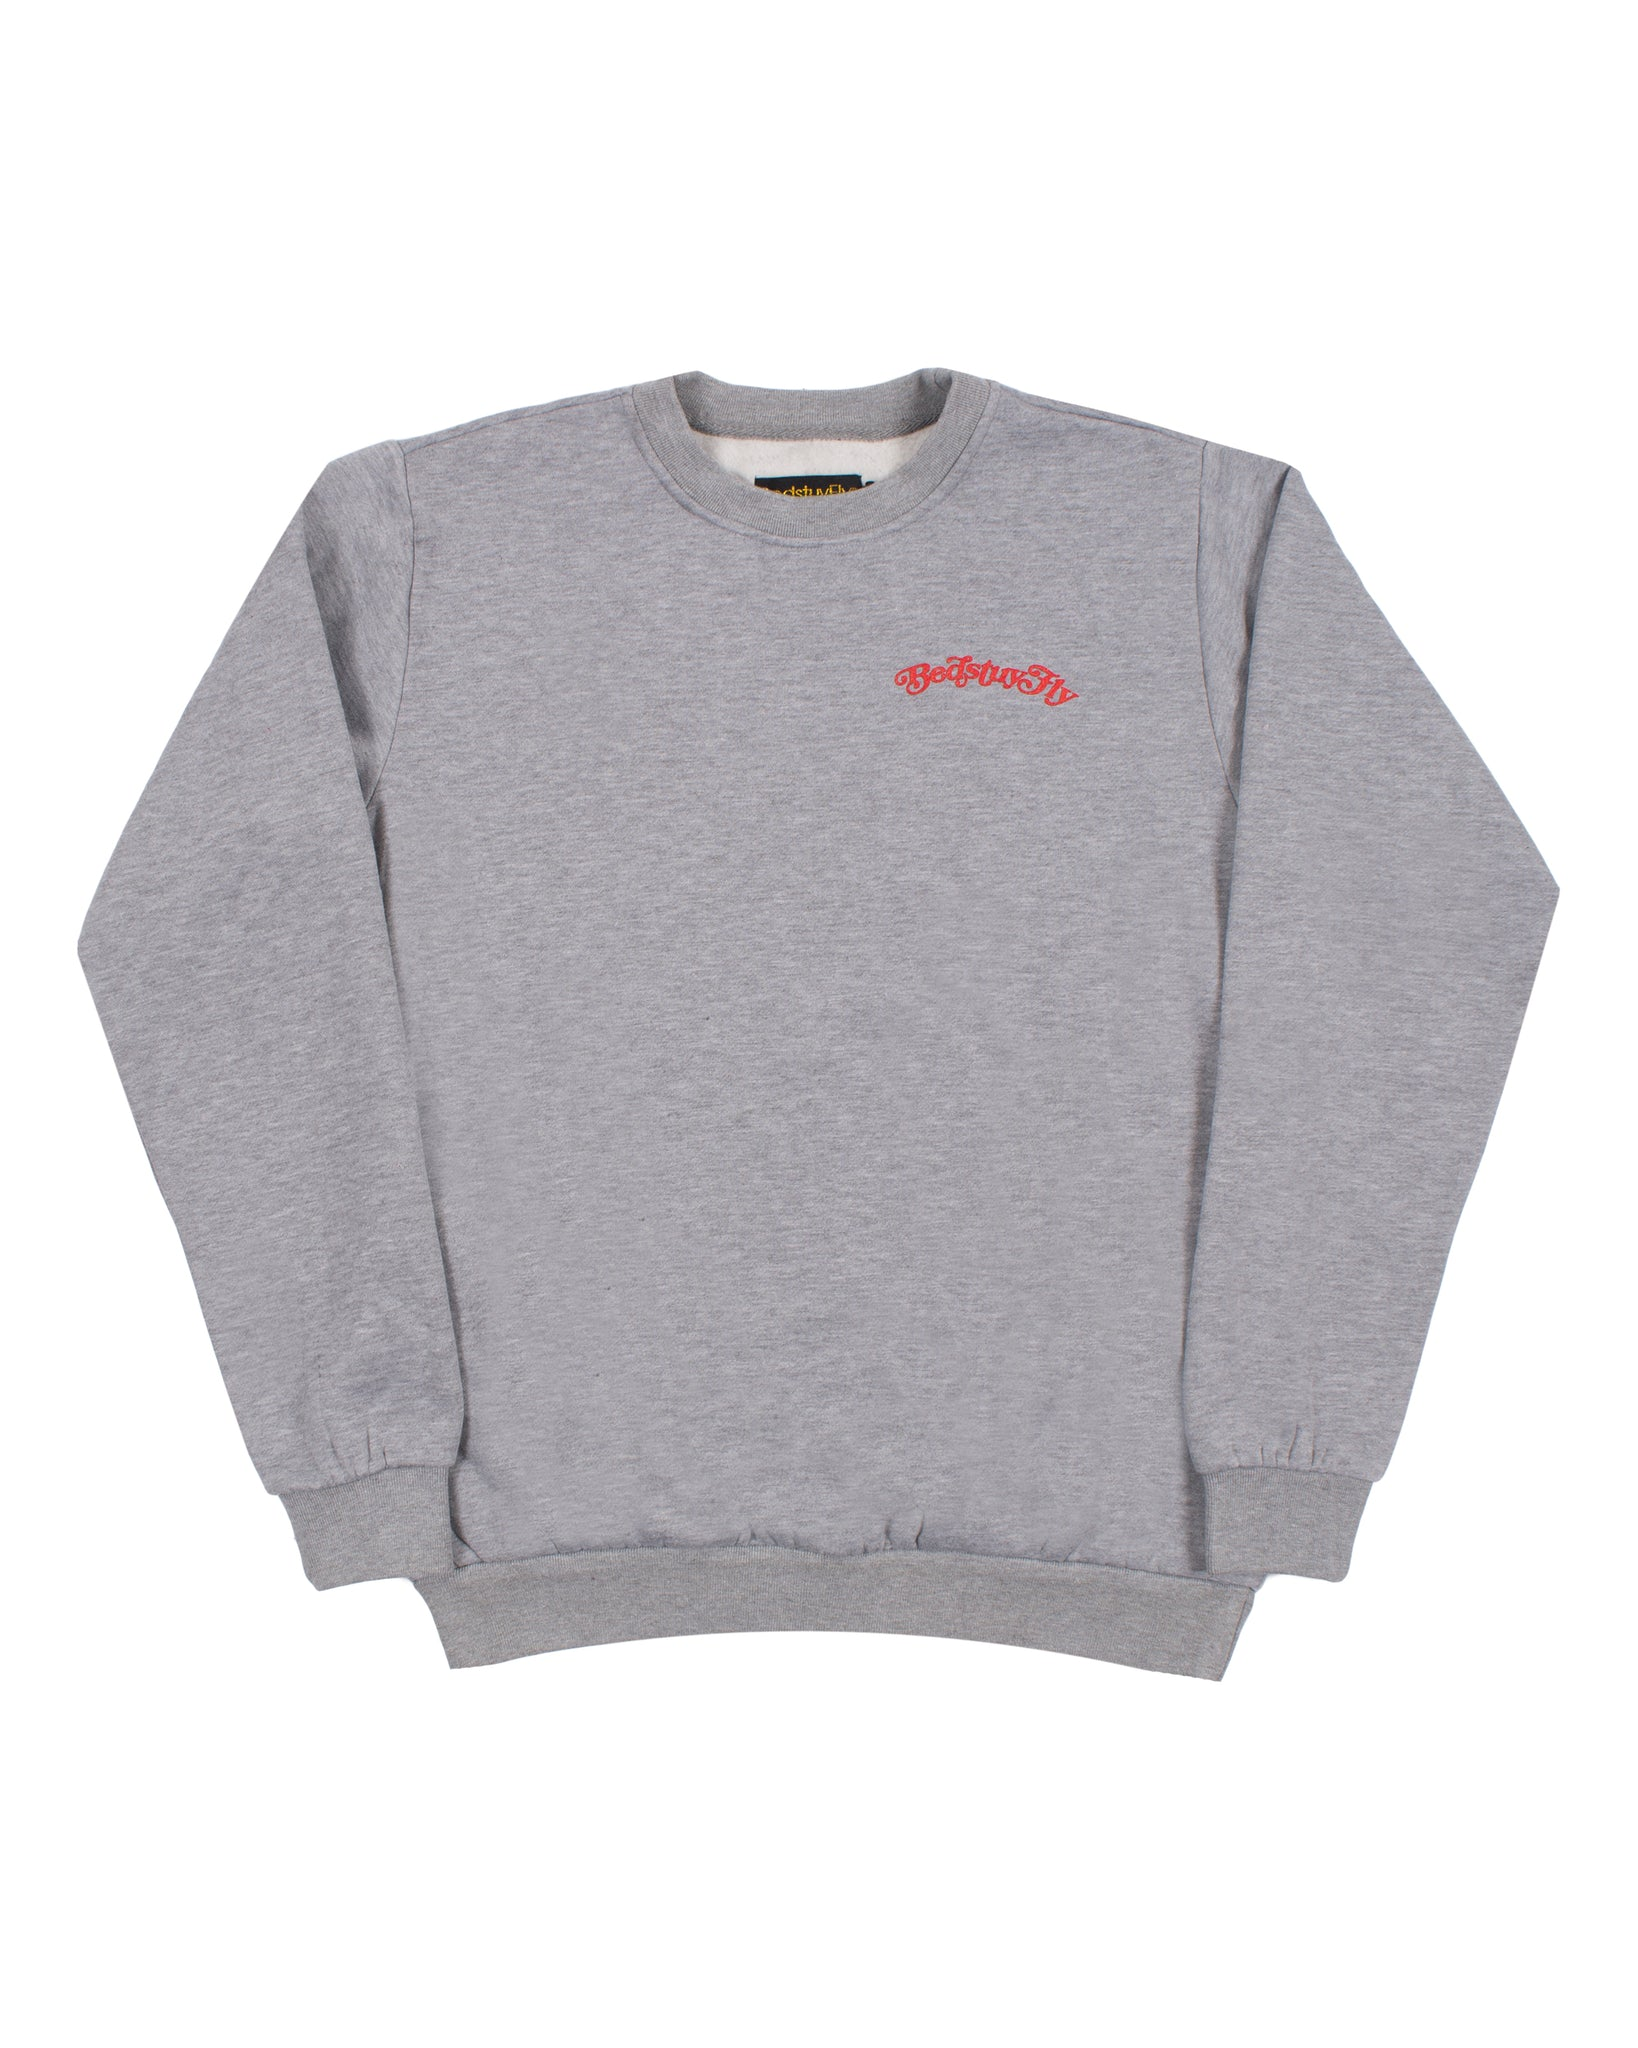 Mind Your Business Sweatshirt (Gry/Red)